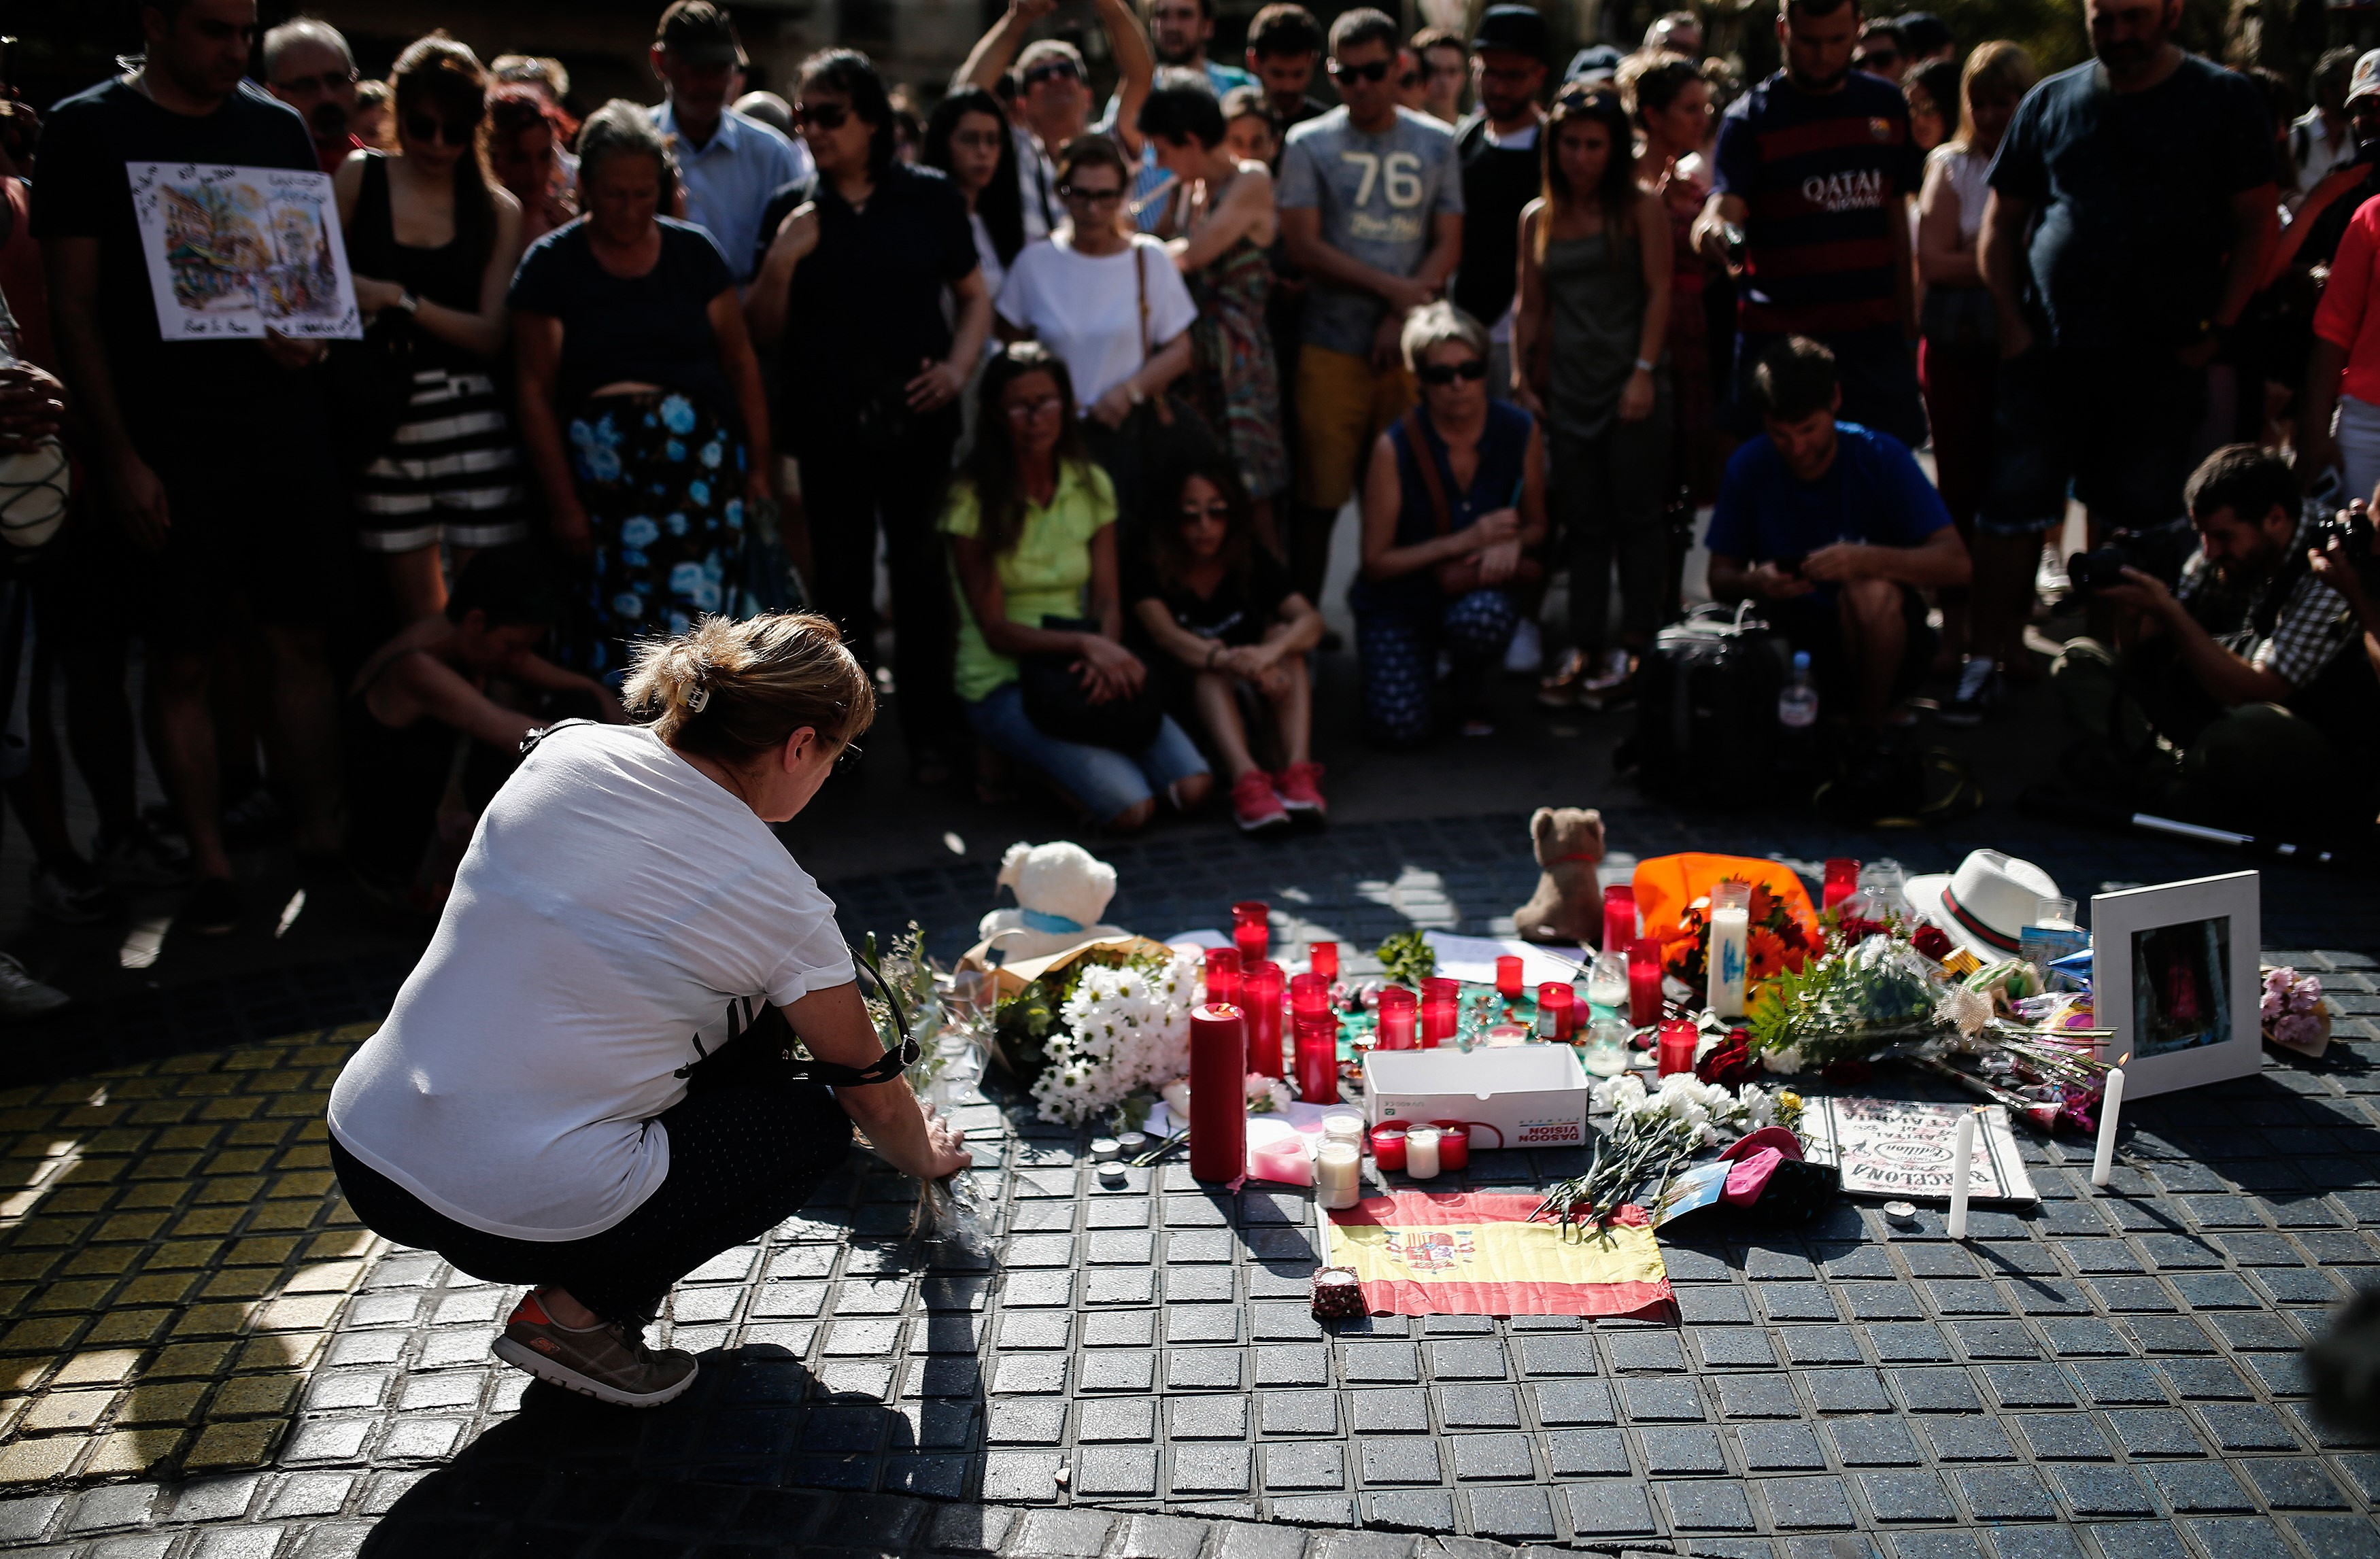 People gather and mourn at La Rambla boulevard for the victims those who lost their lives in terror attack killing at least 13 people when a white van ploughed into a crowd in central Barcelona.